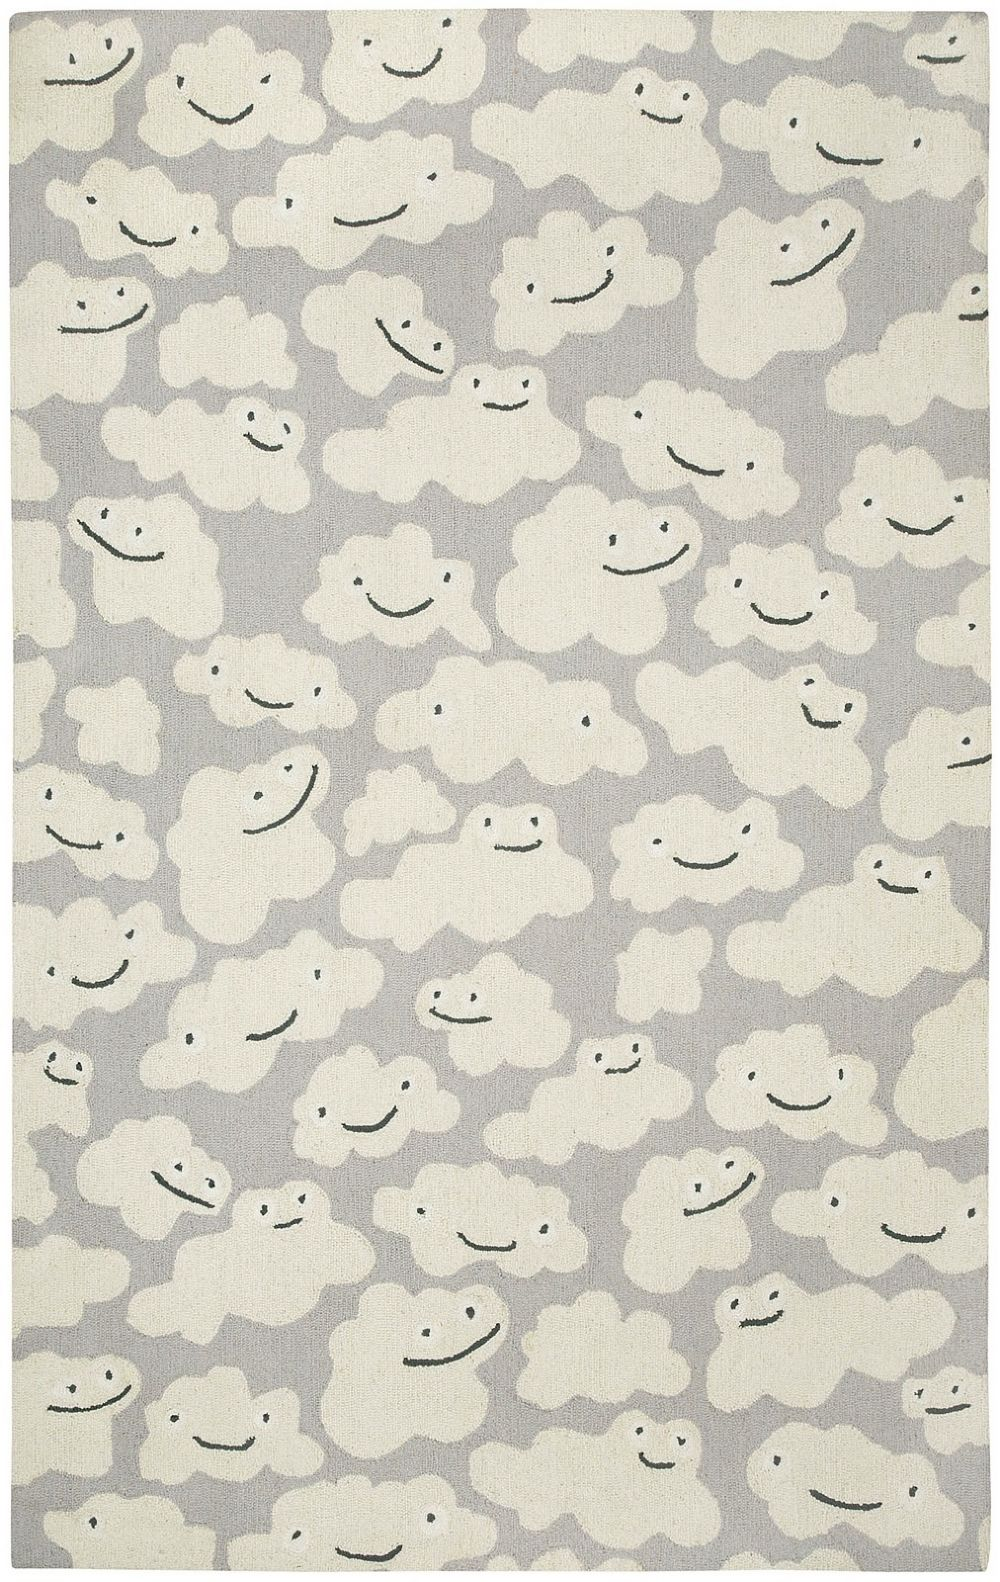 capel puffy contemporary area rug collection